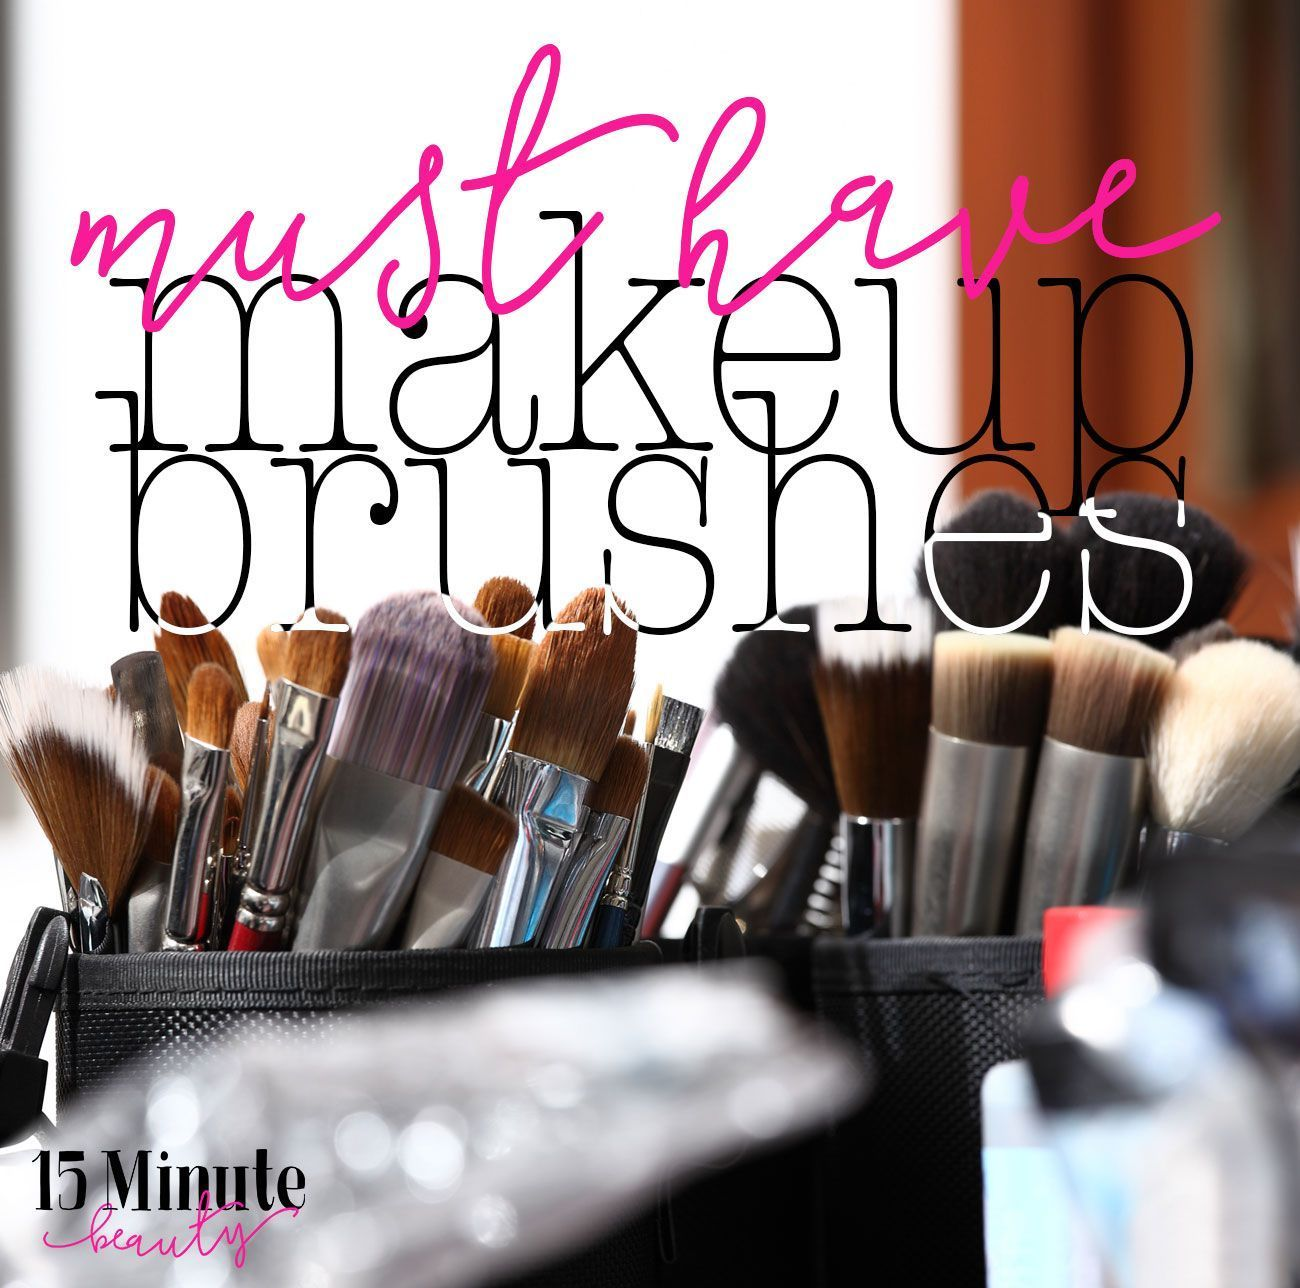 Great list of must have makeup brushes Explanations of each brush how to use them and a list of brushes at different price points